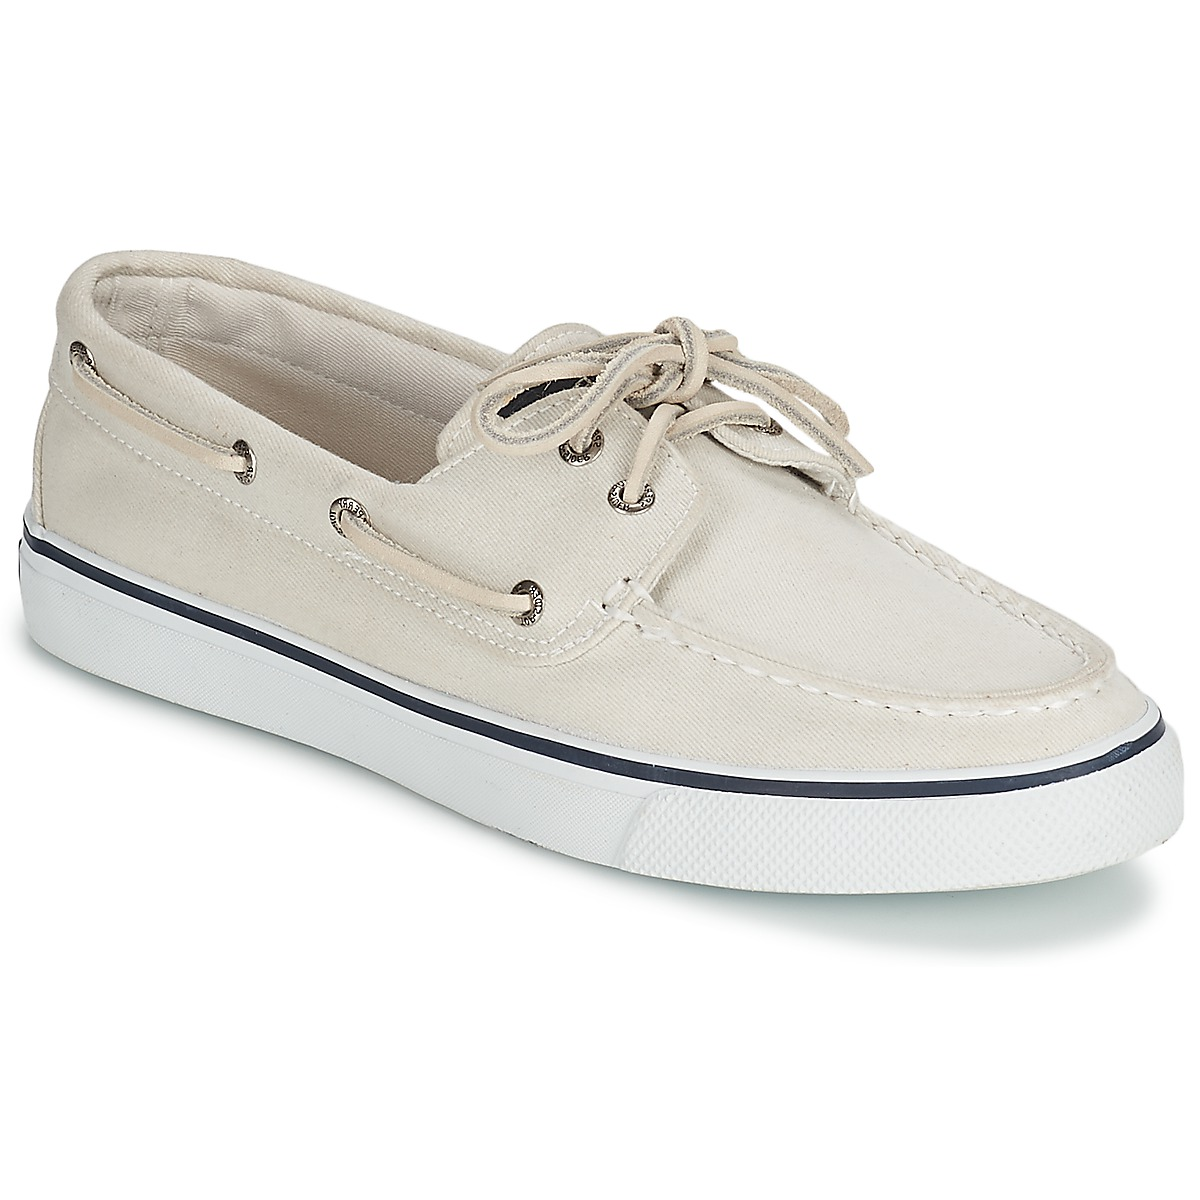 Sperry Top-Sider BAHAMA CORE Blanc